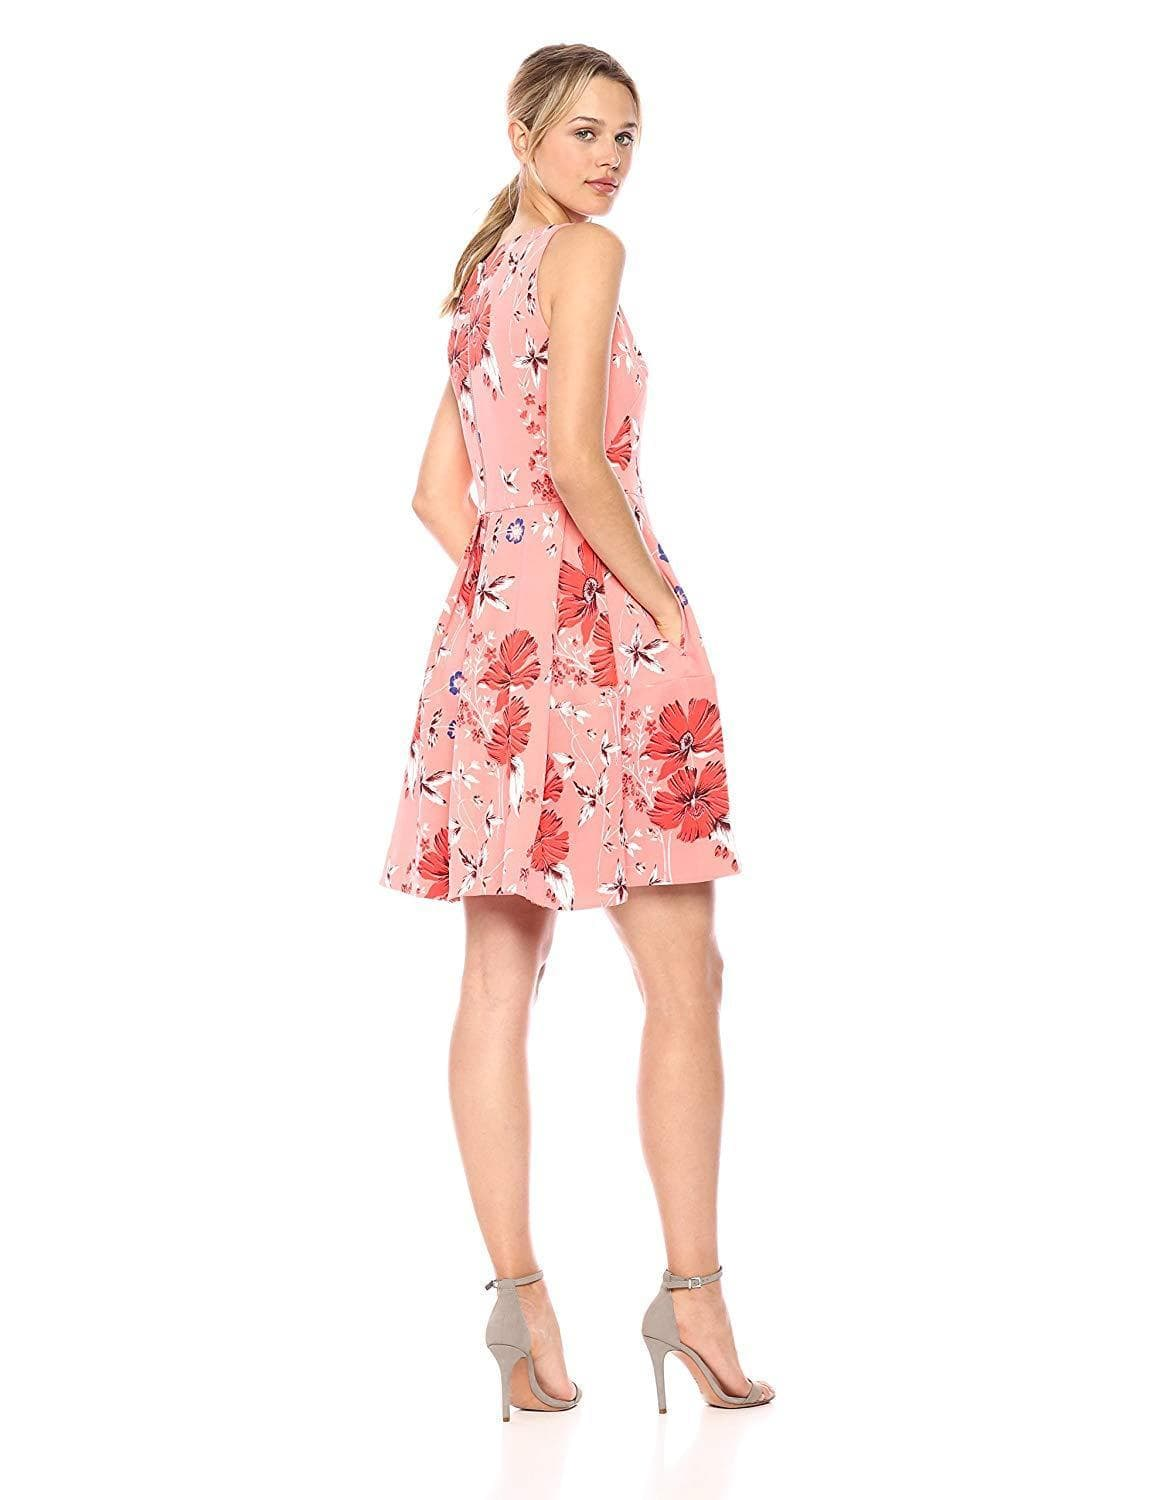 Taylor - 9757MJ Floral Print Short A-Line Dress In Pink and Floral